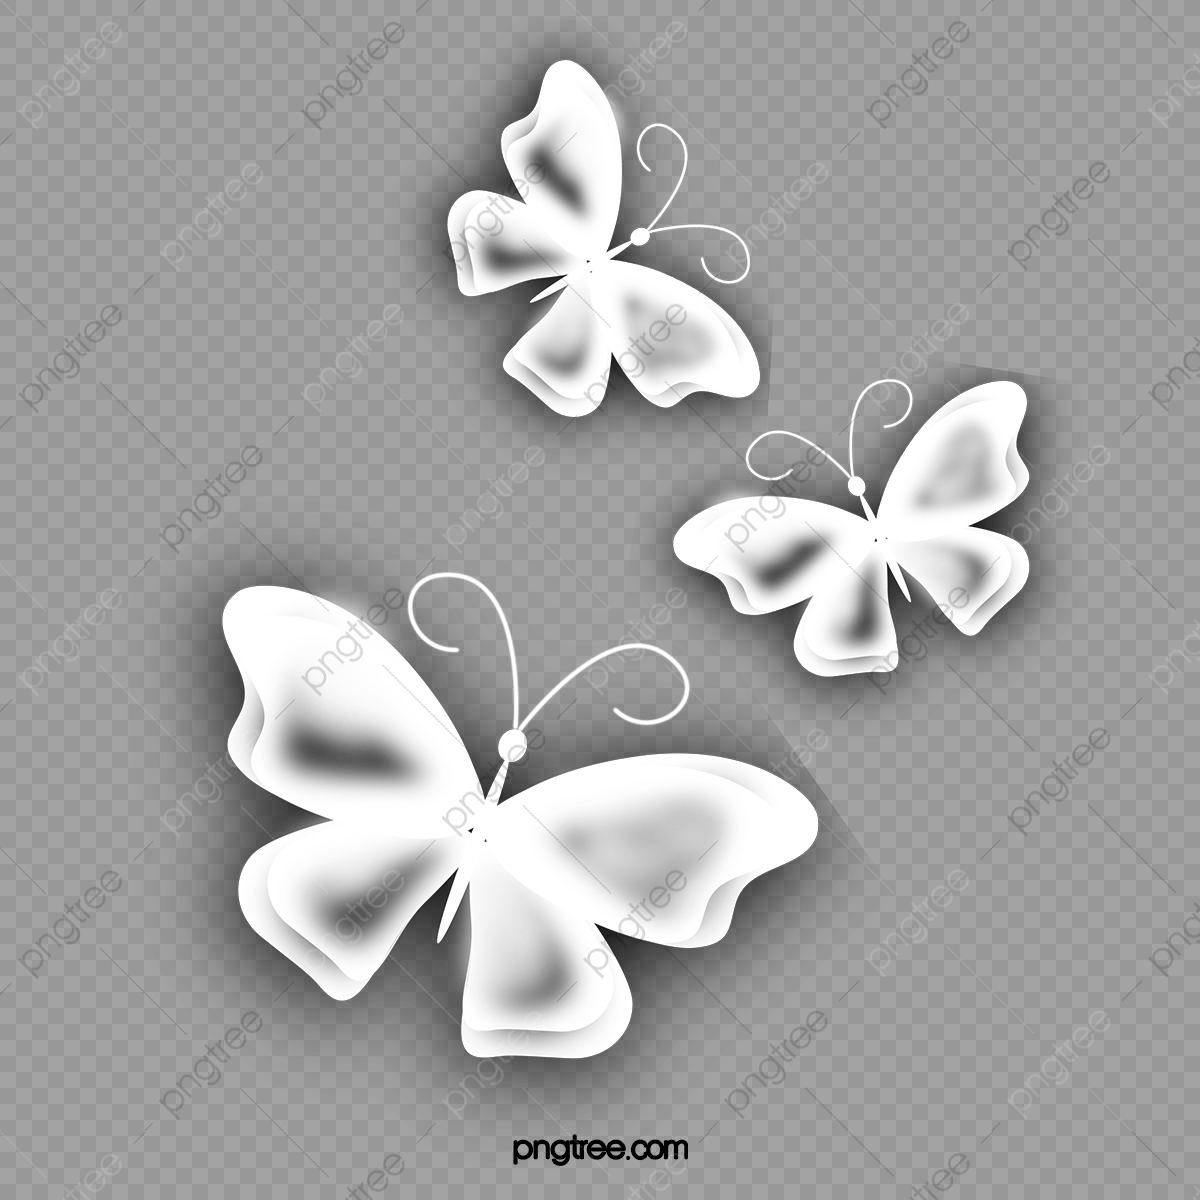 White Butterfly Butterfly Clipart Butterfly White Clipart Png Transparent Clipart Image And Psd File For Free Download